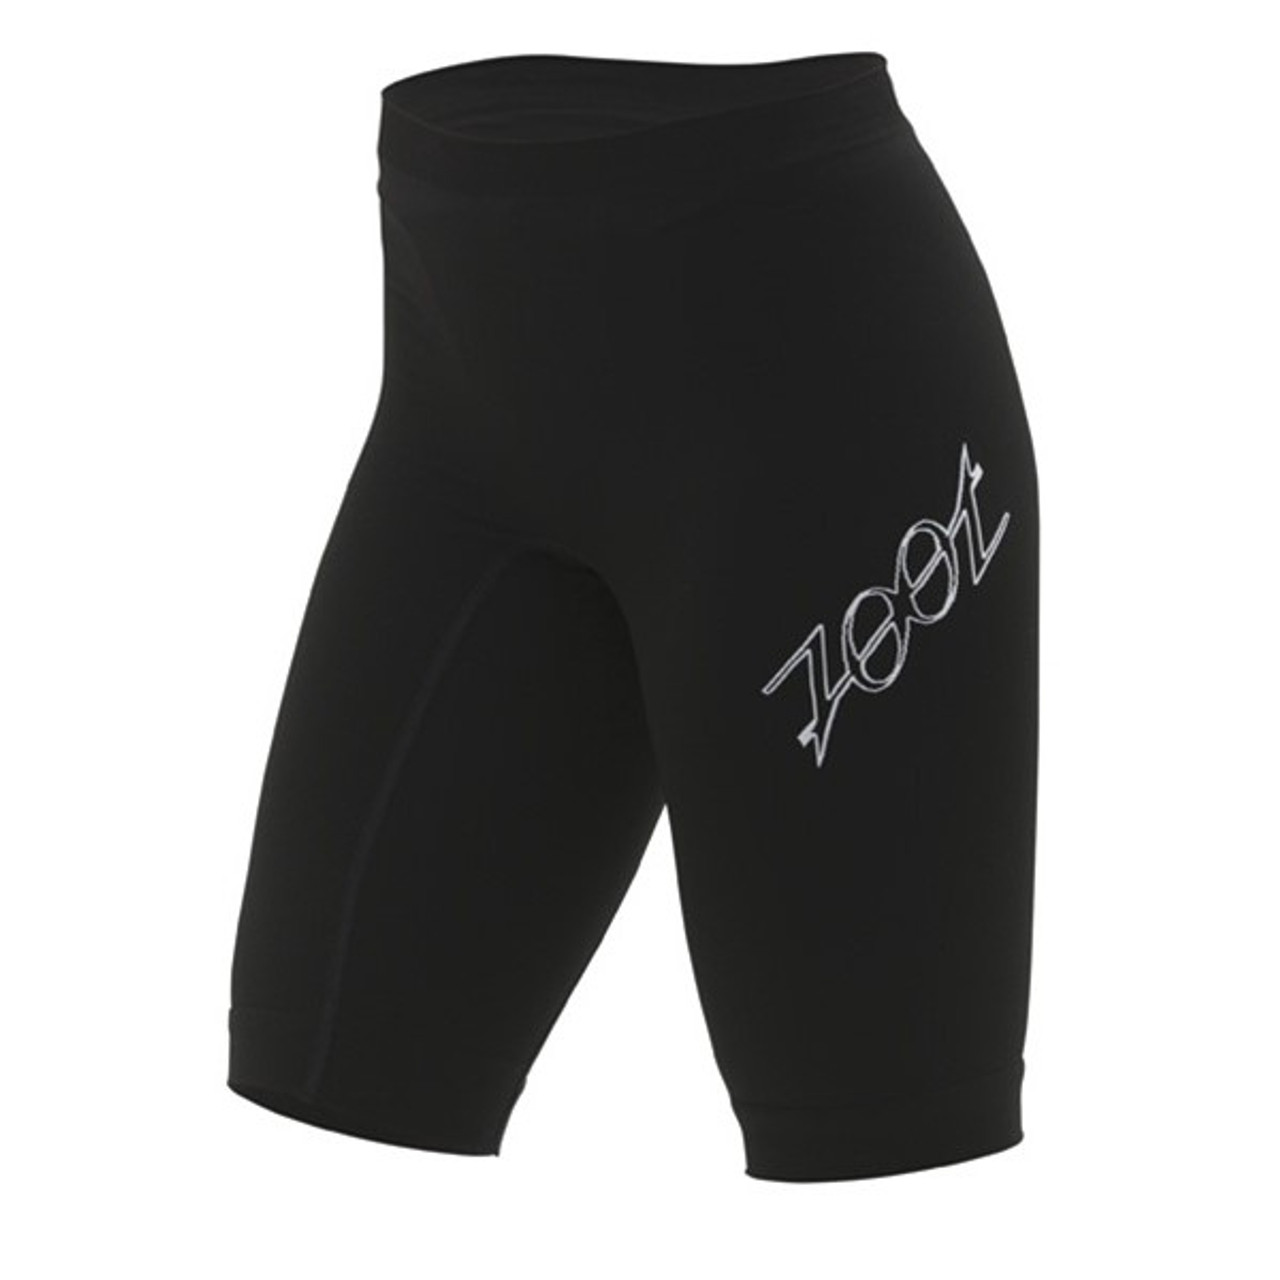 Zoot Unisex CompressRx Endurance Active Tight